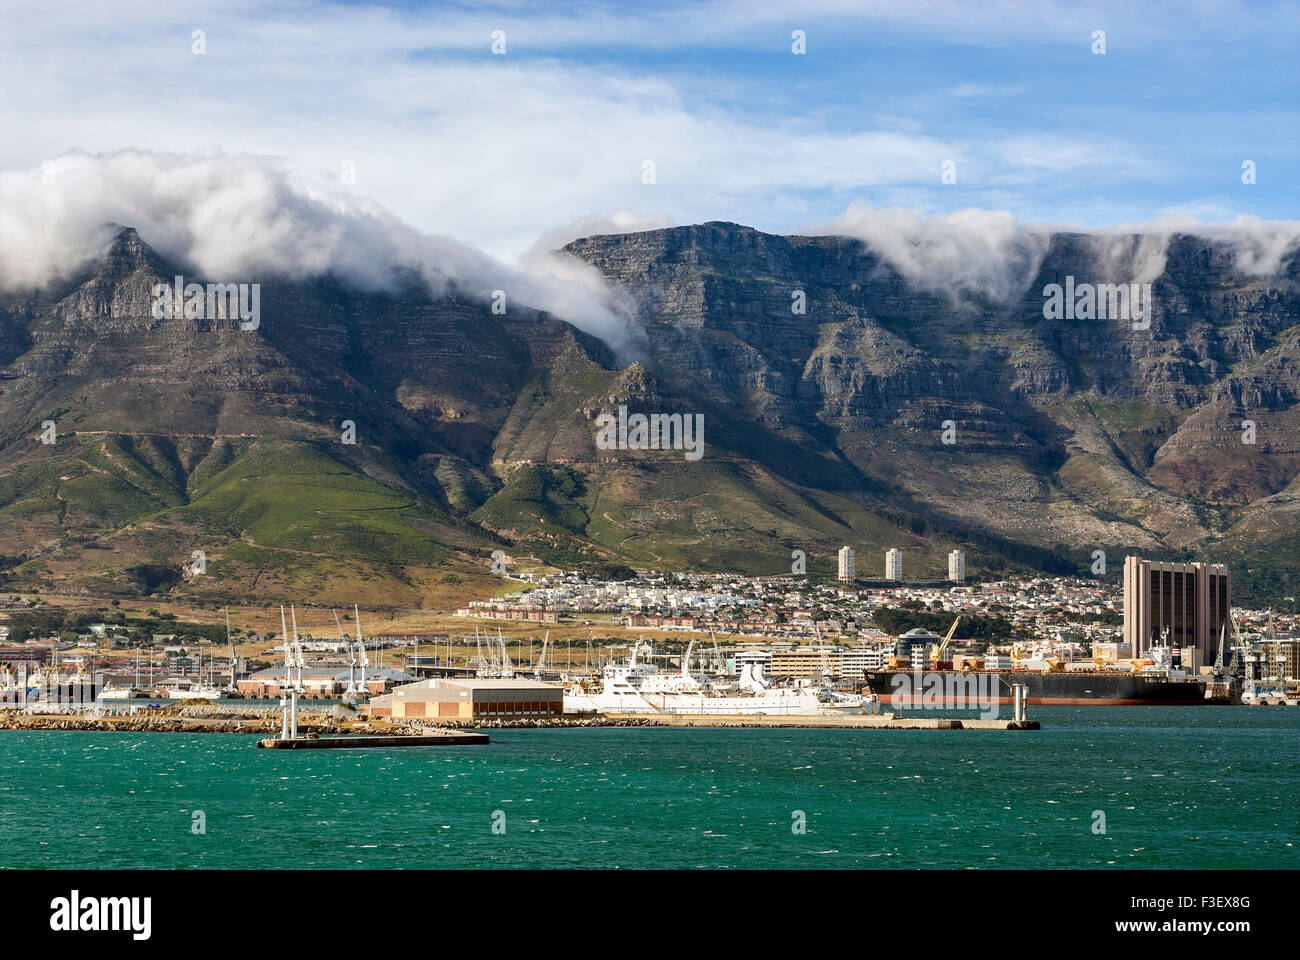 Seaside view Cape Town and the Table Mountain with Fog, South Africa. | Kapstadt und Tafelberge mit Nebel, Suedafrika - Stock Image